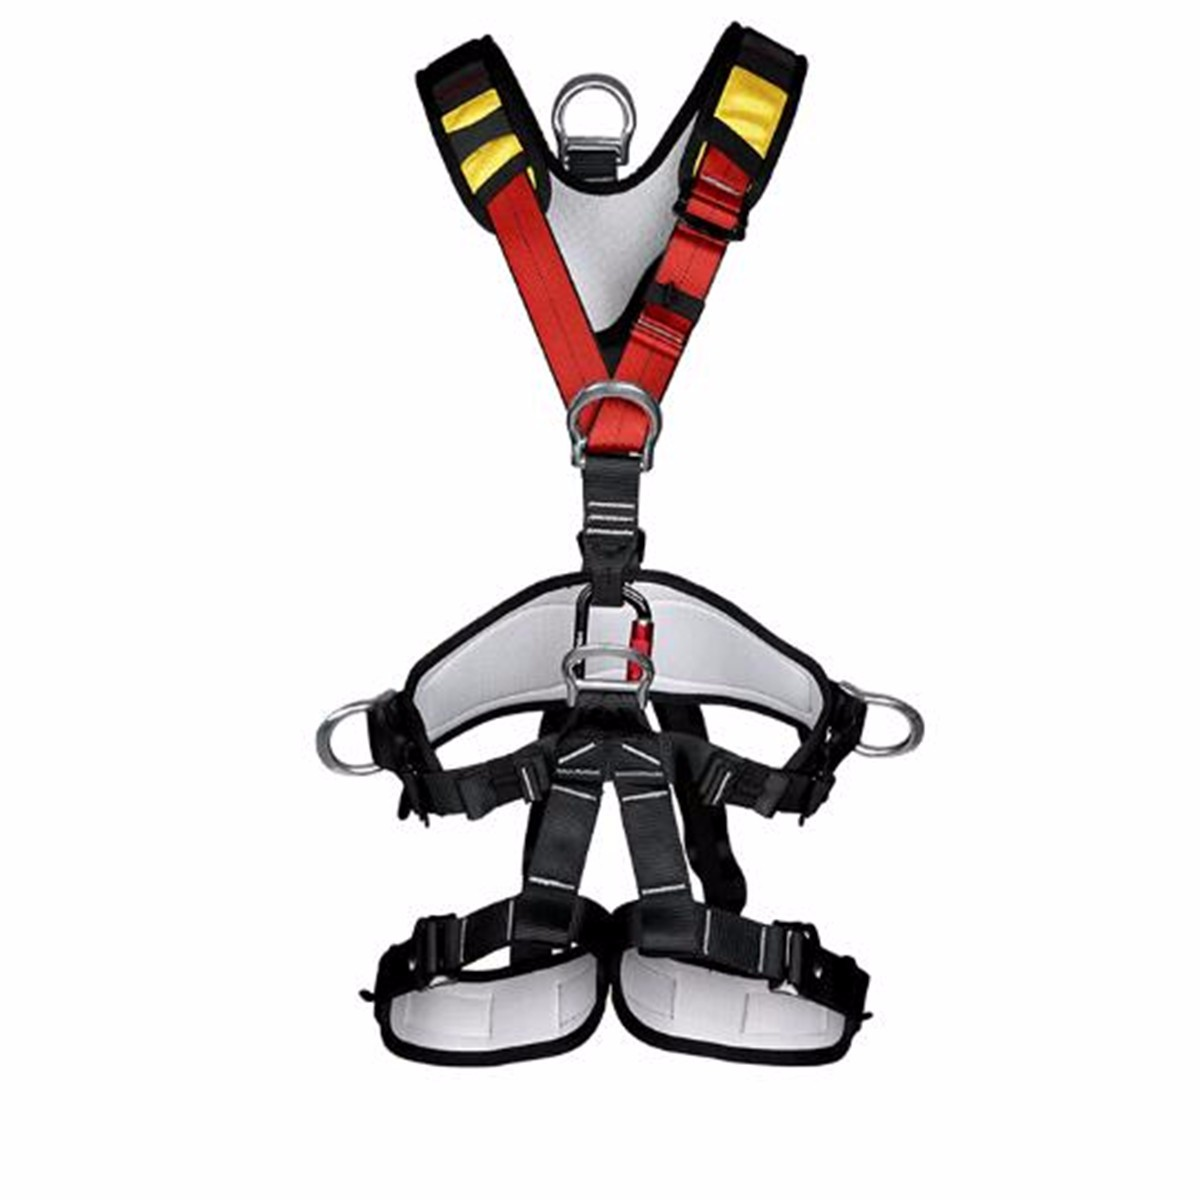 Safurance Outdoor Rappelling Full Body Safety Harness Wearing Seat Belt Sitting Bust Protection Gear Workplace Safety burning seat jumping seat sop8 wide body sop8 narrow body sop16 patch direct test seat